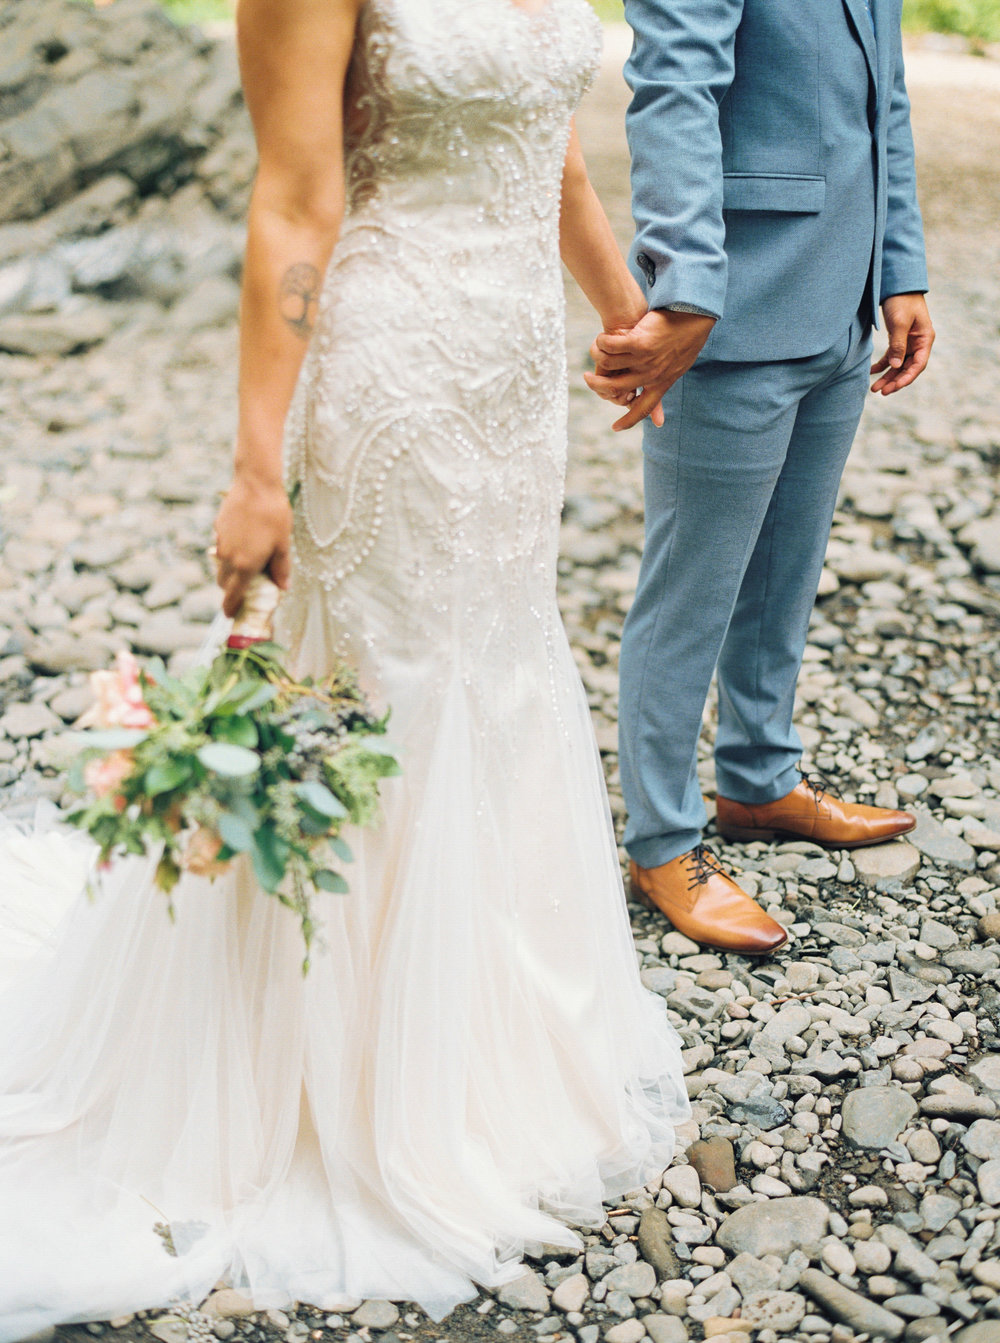 abiqua_falls_elopement_wedding_oregon_photographer_videographer_076.jpg